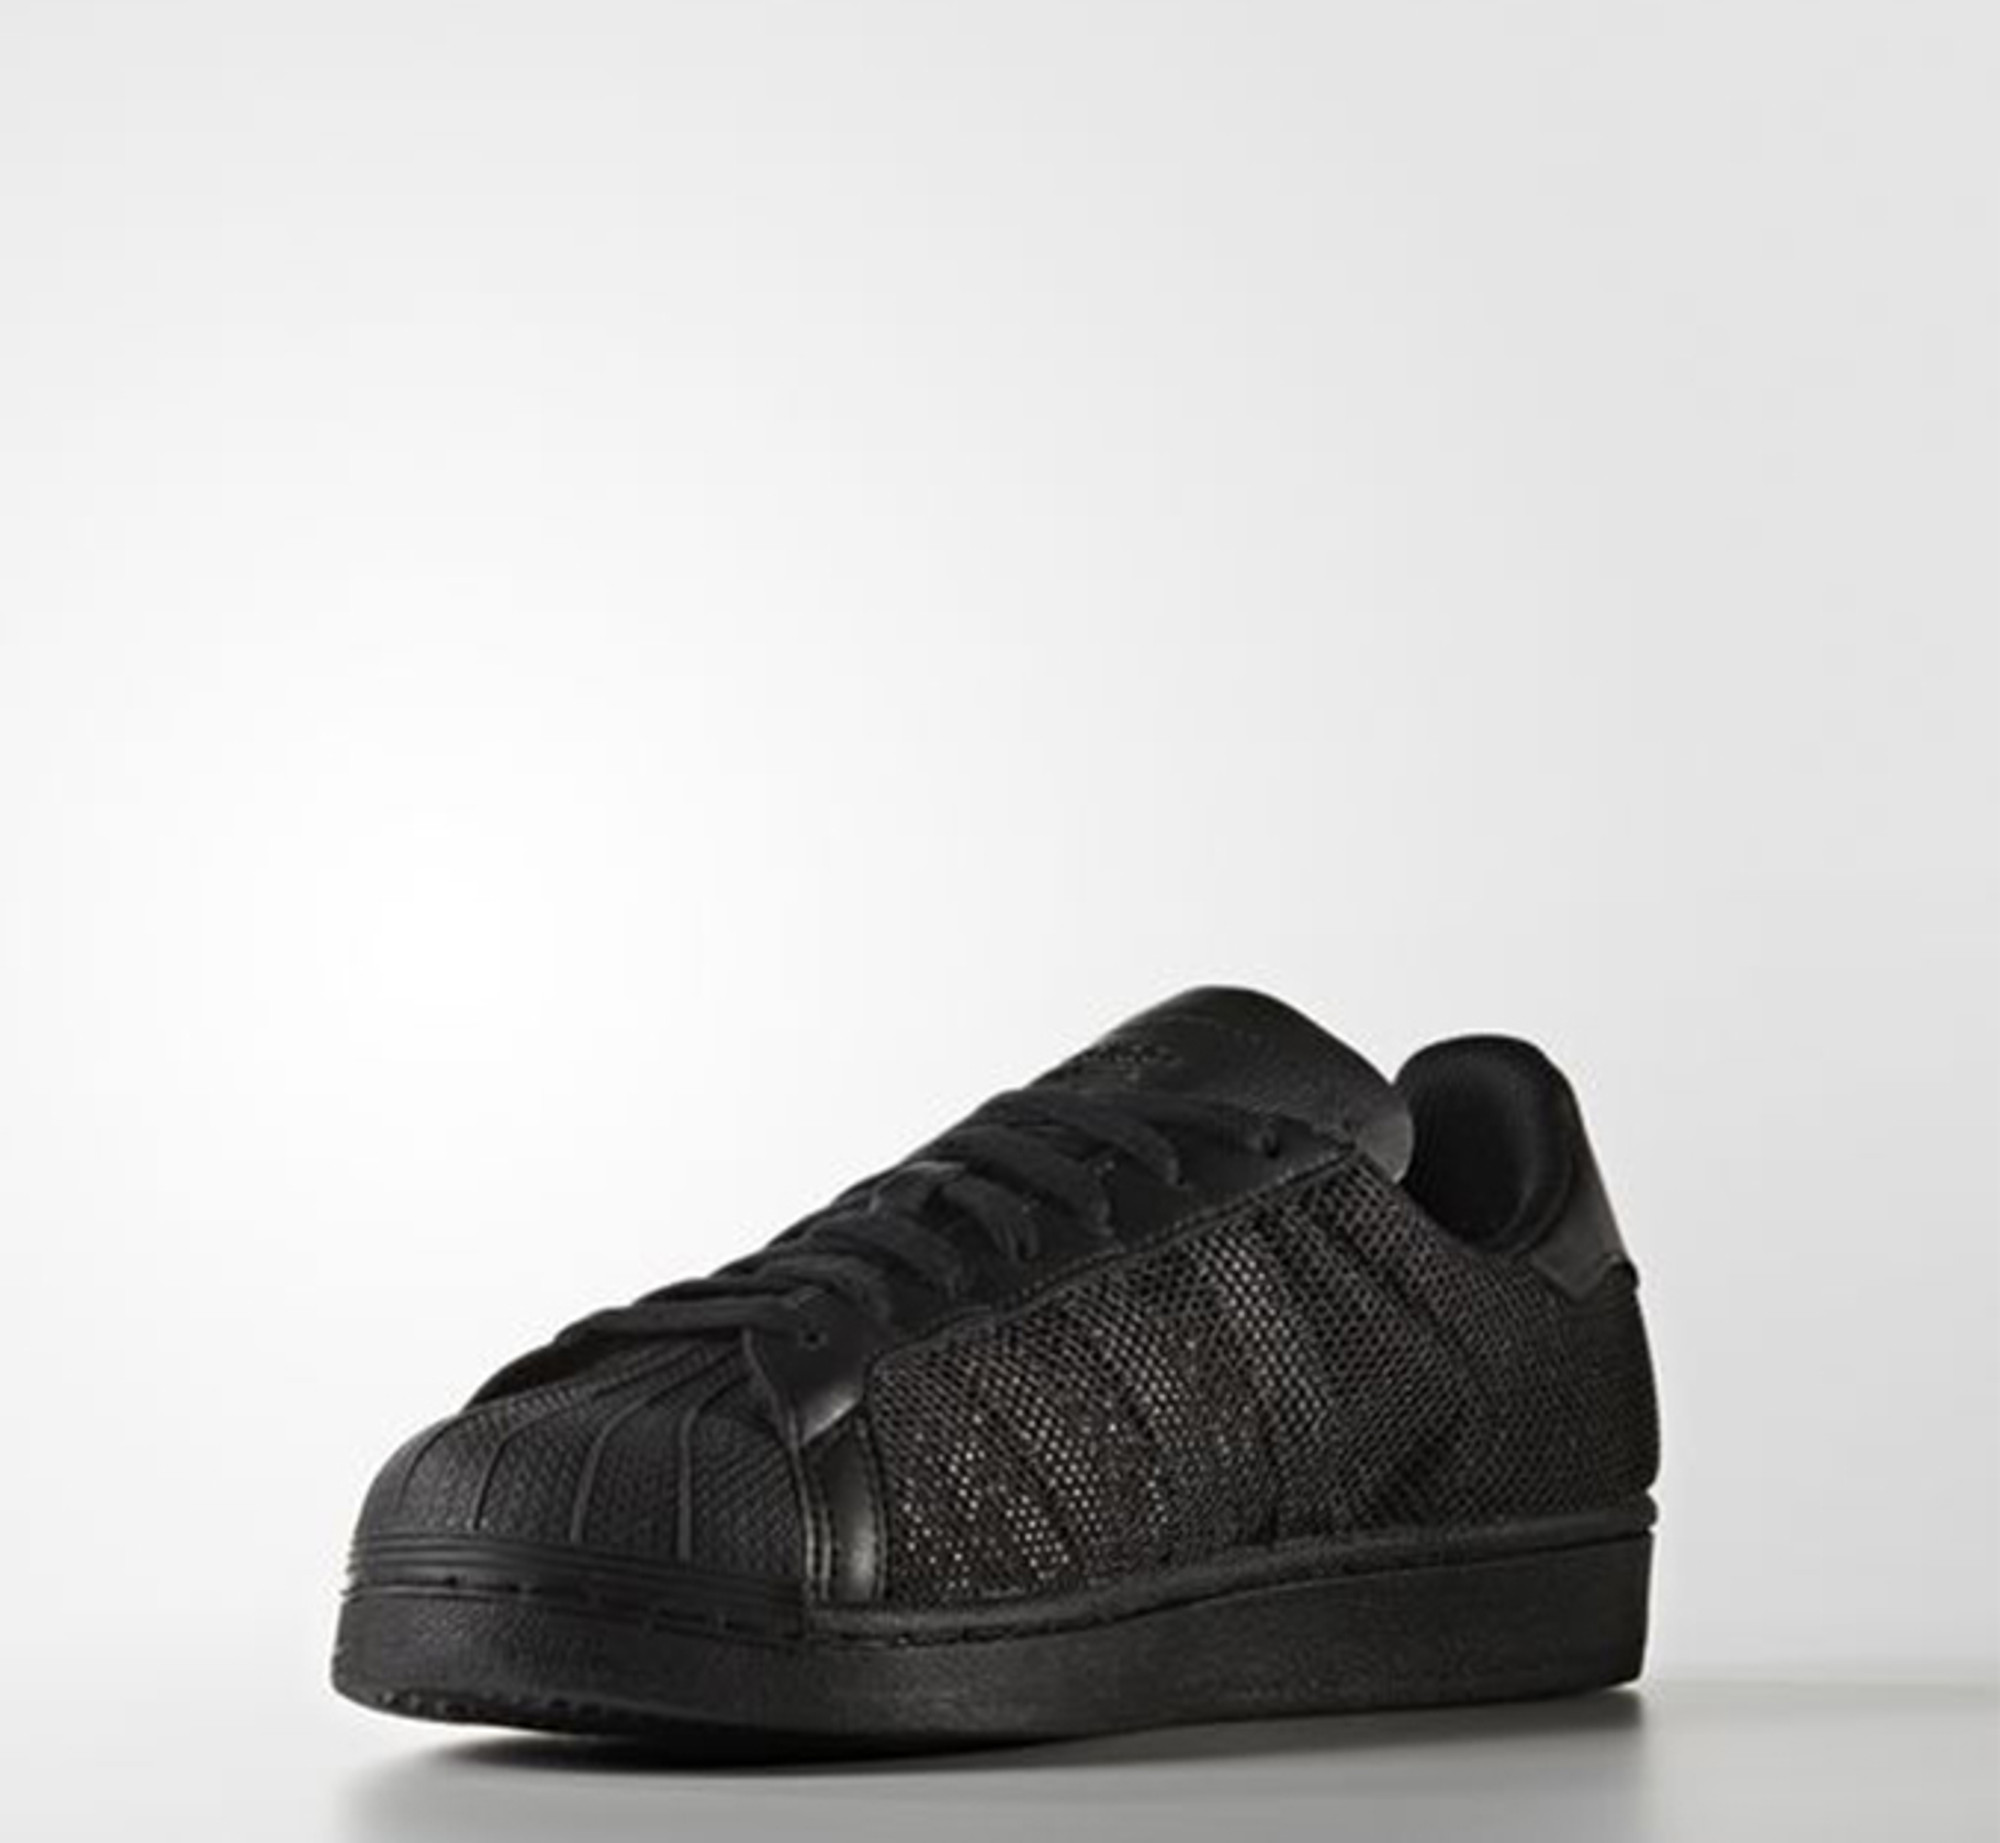 sale retailer 87f8e 08c1e adidas SuperStar Triple